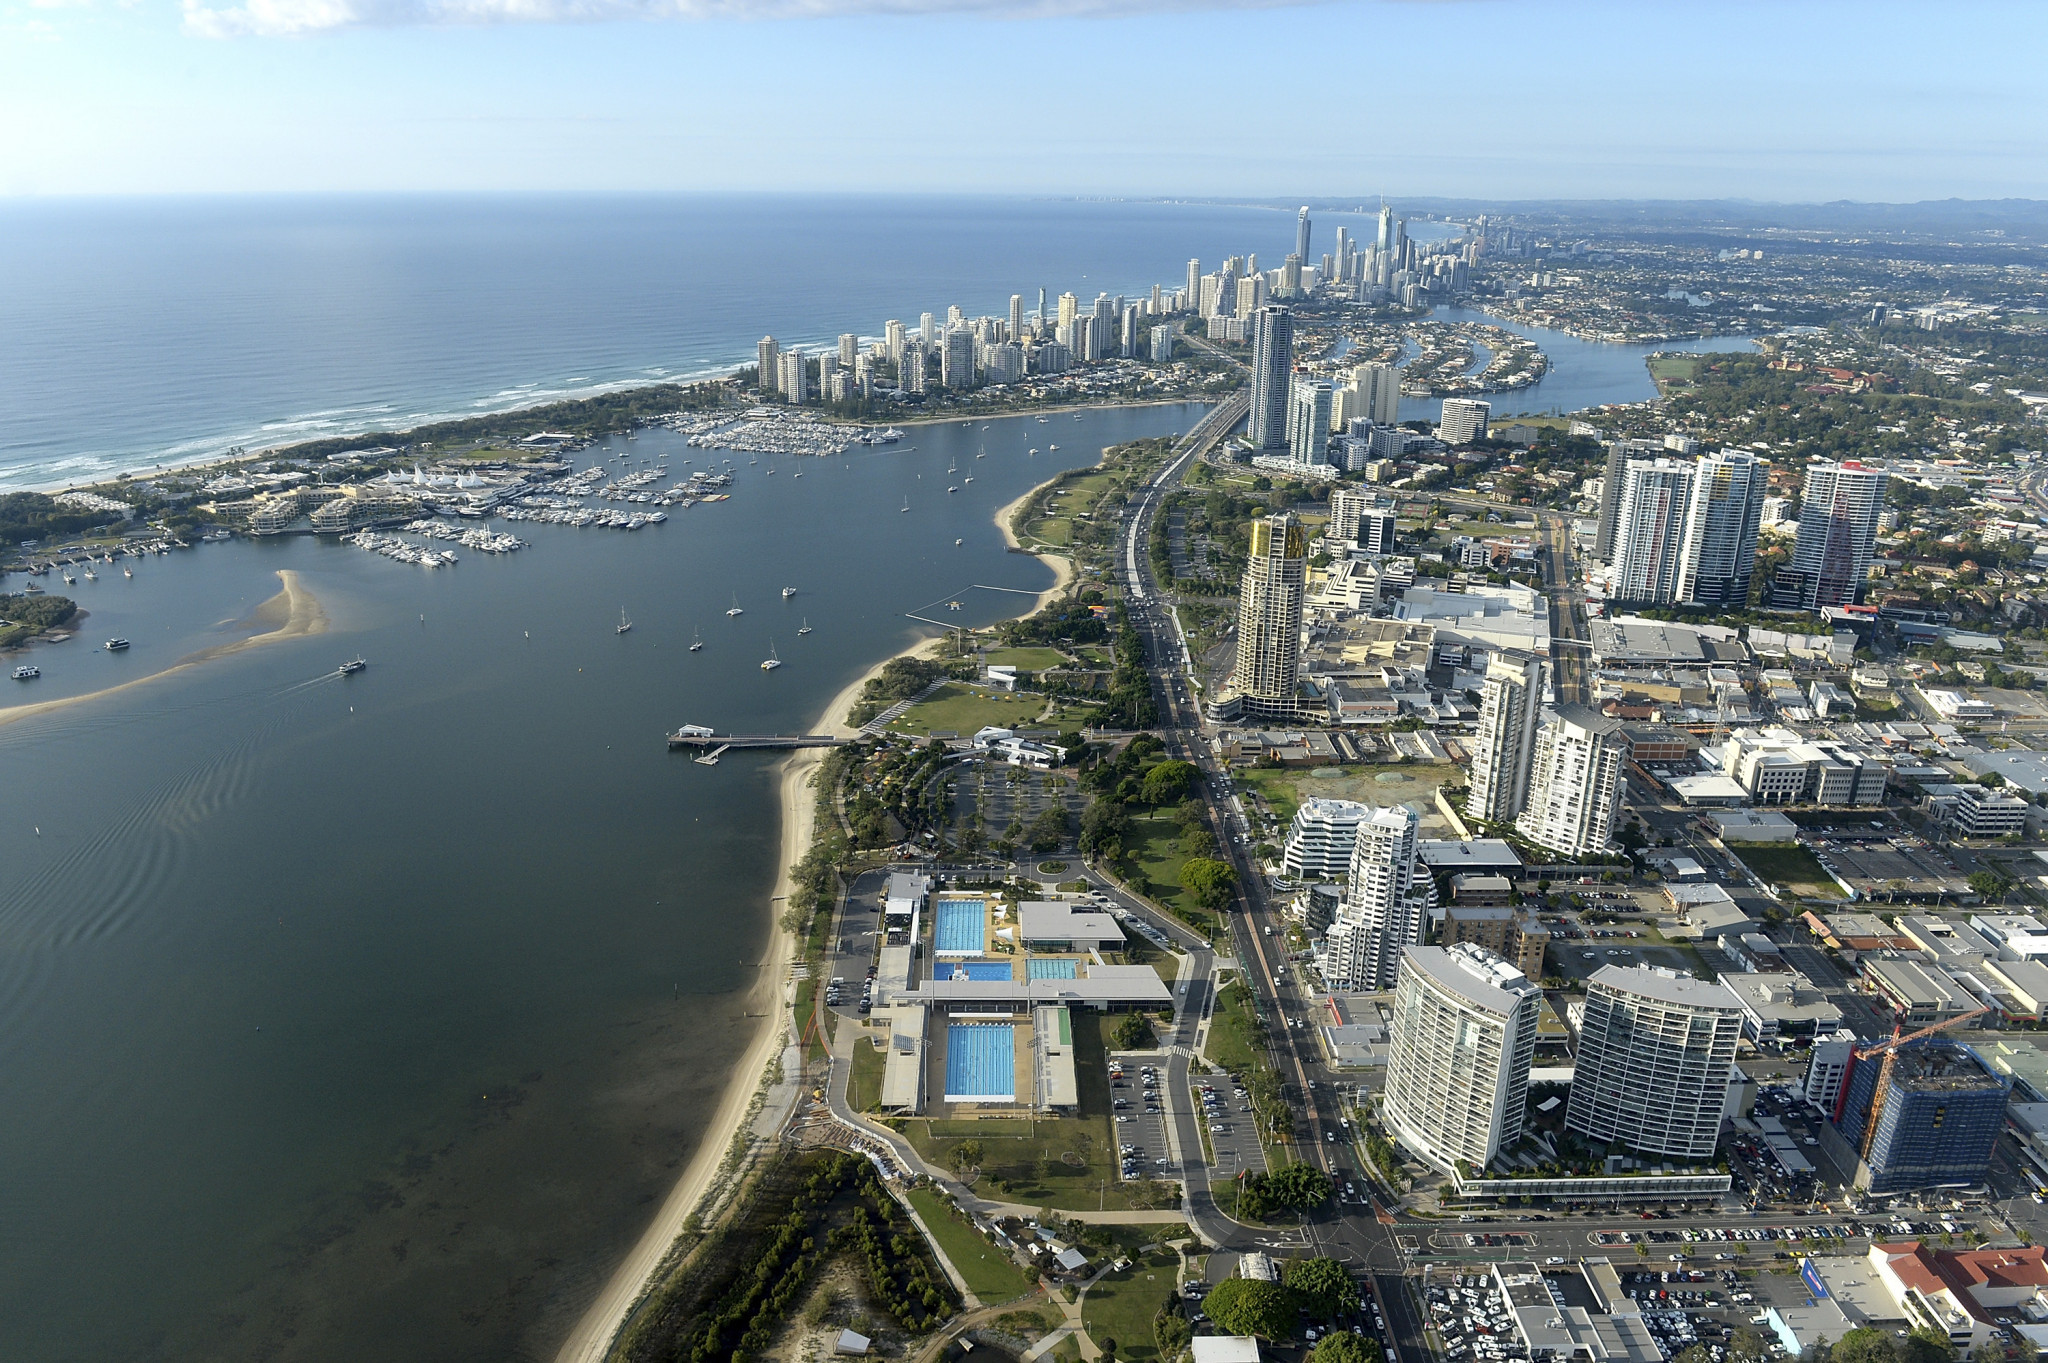 CGF Coordination Commission to begin final visit to Gold Coast with update expected on 2022 hosts